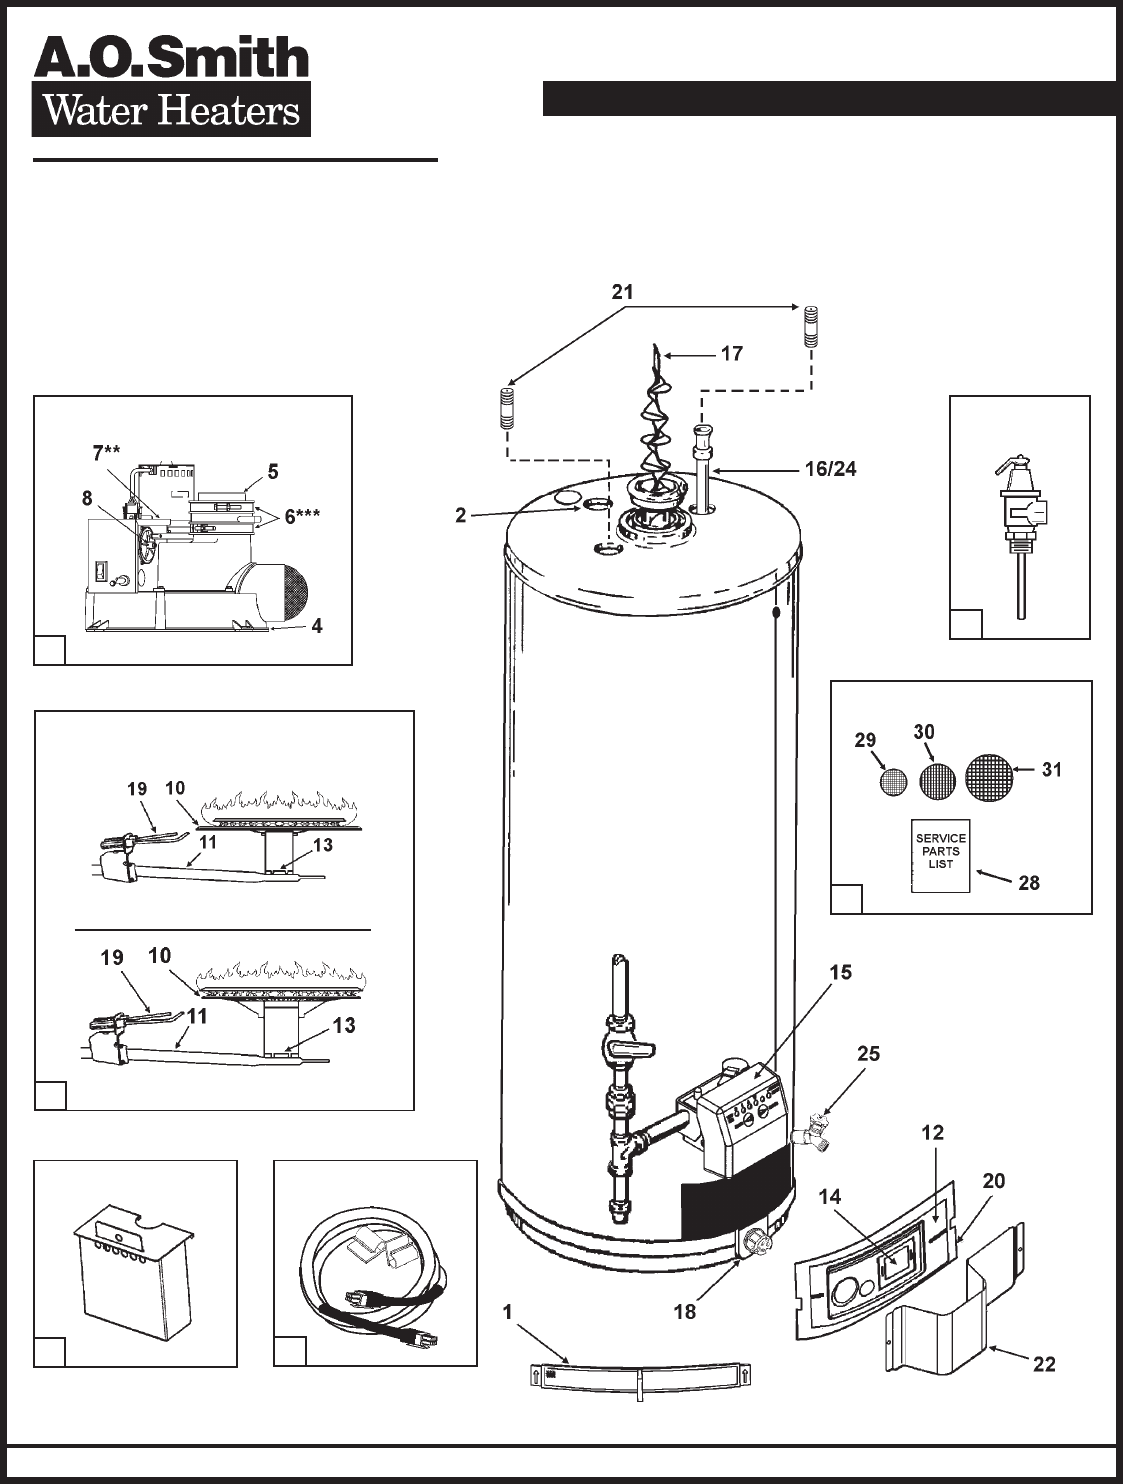 Ao Smith Water Heater Wiring Diagram Another Blog About For Heaters Electric 45 Hot Gas